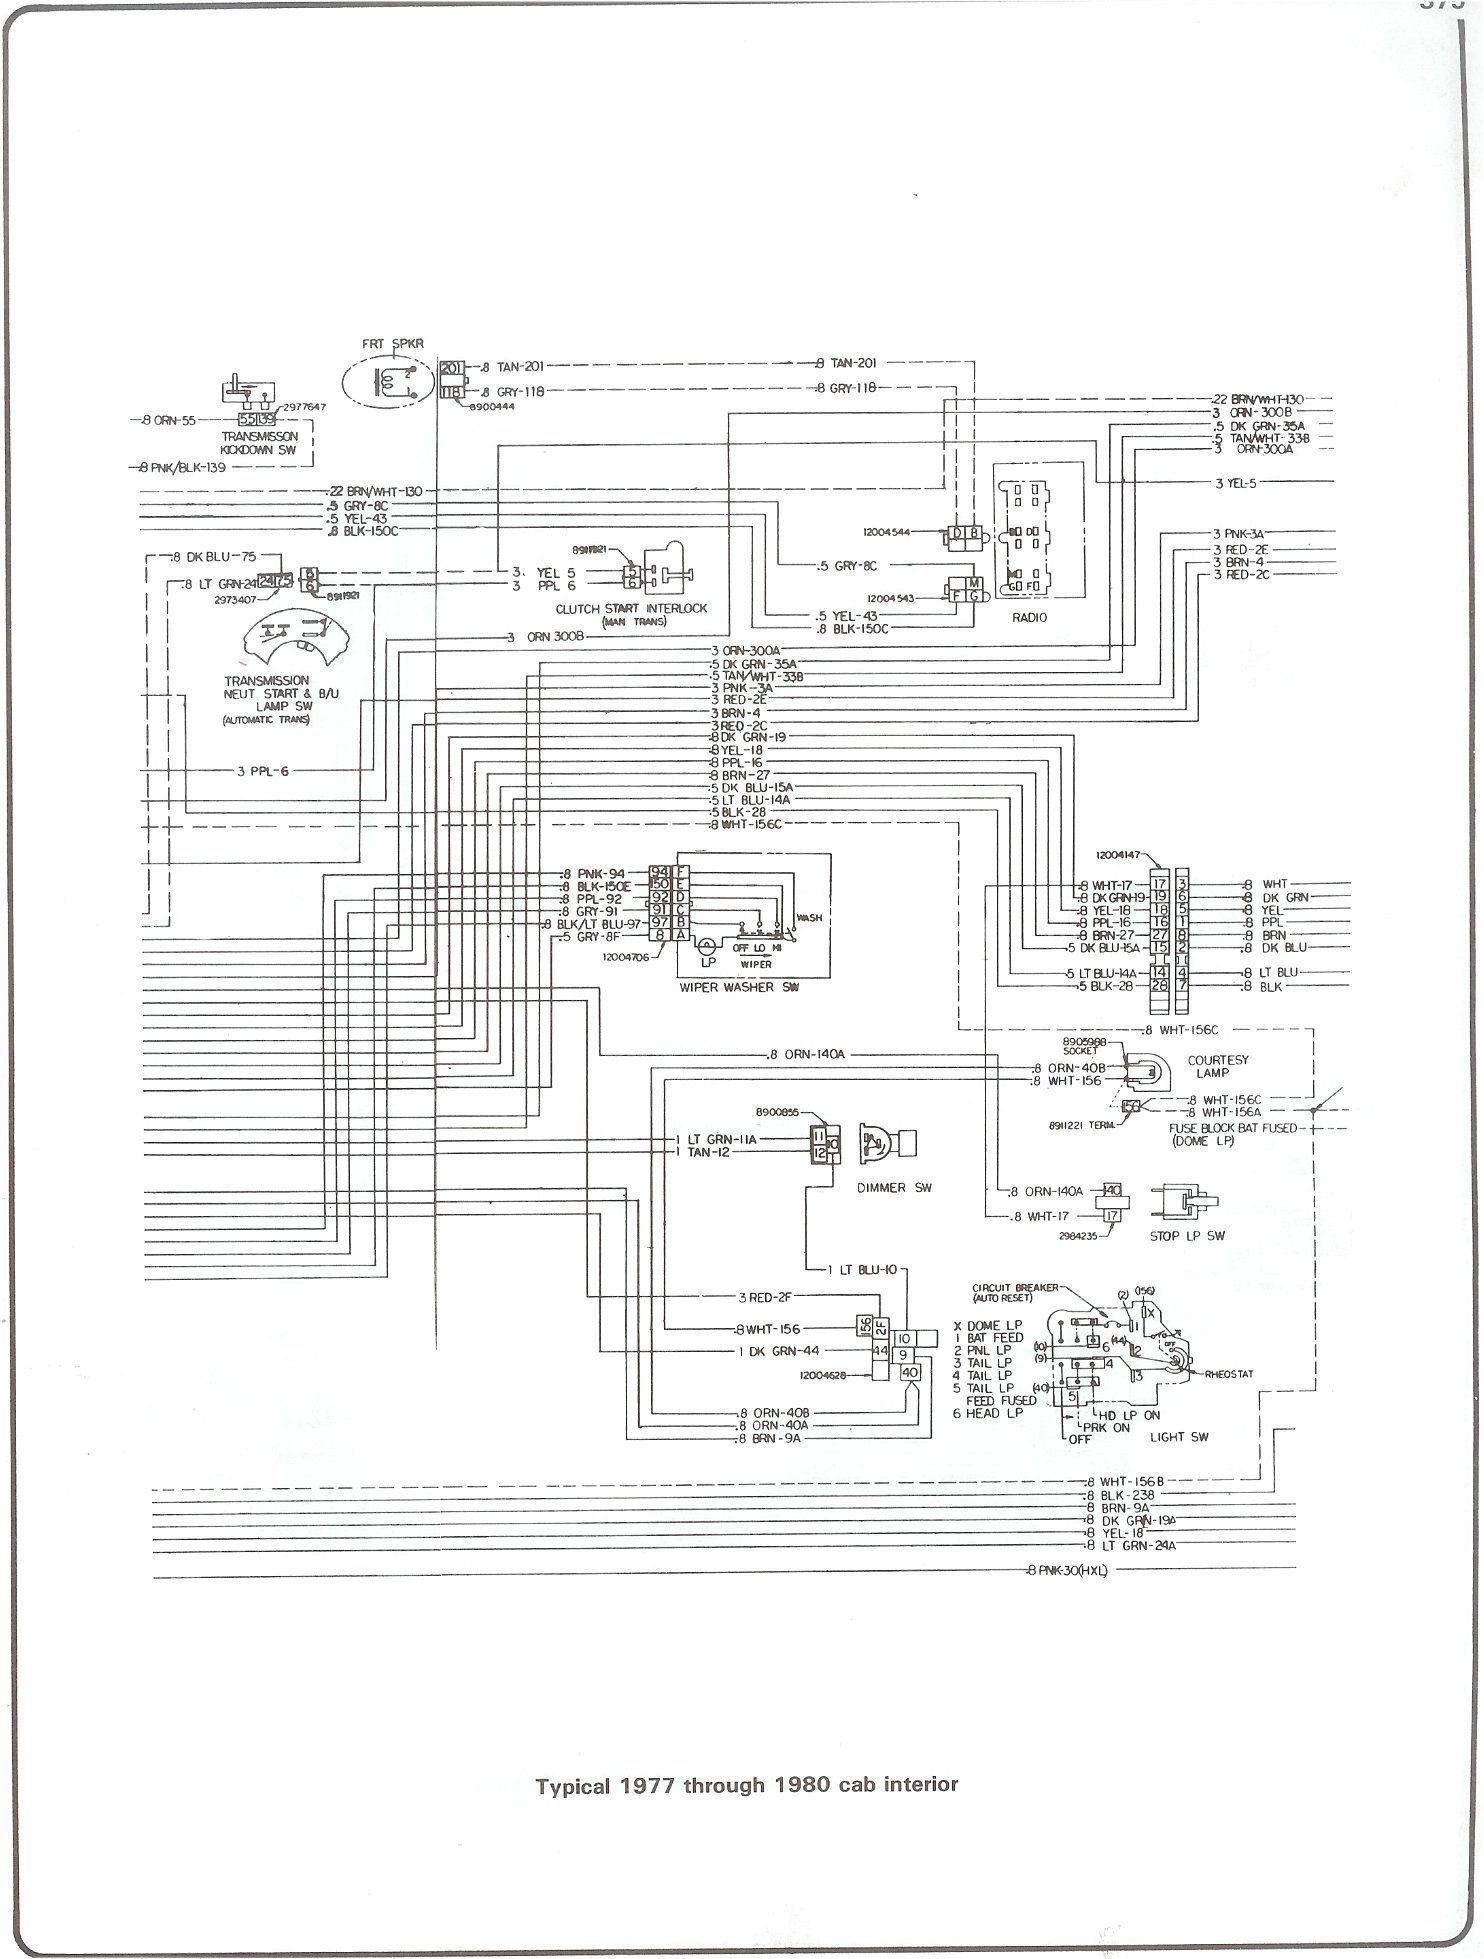 77 80_cab_inter complete 73 87 wiring diagrams c10 wiring diagram at panicattacktreatment.co